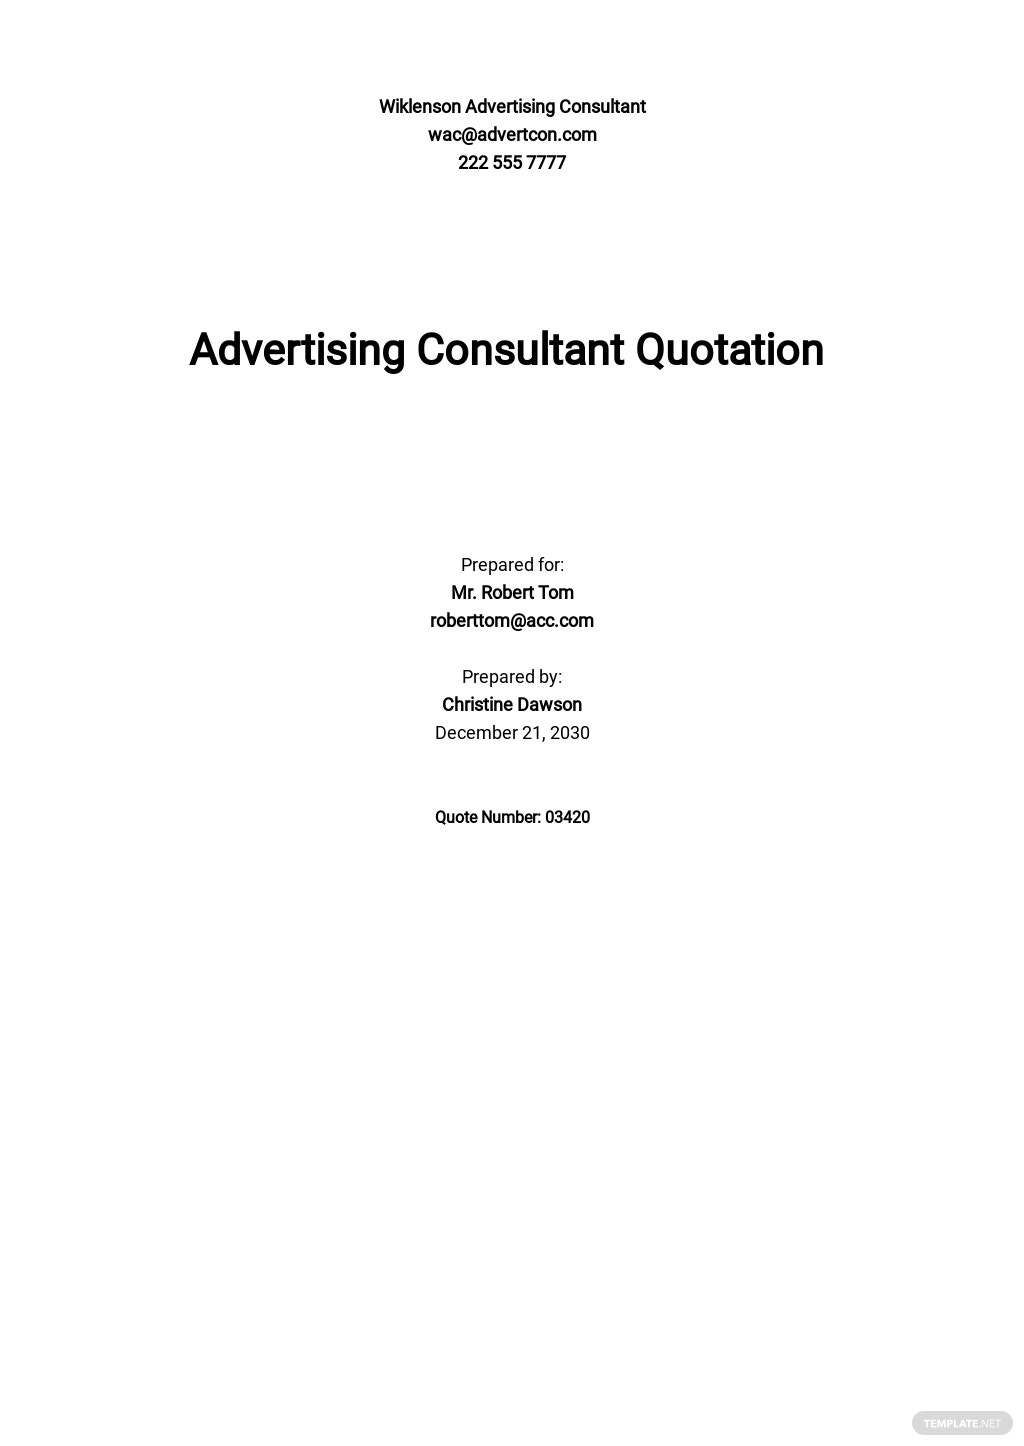 Advertising Consultant Quotation Template